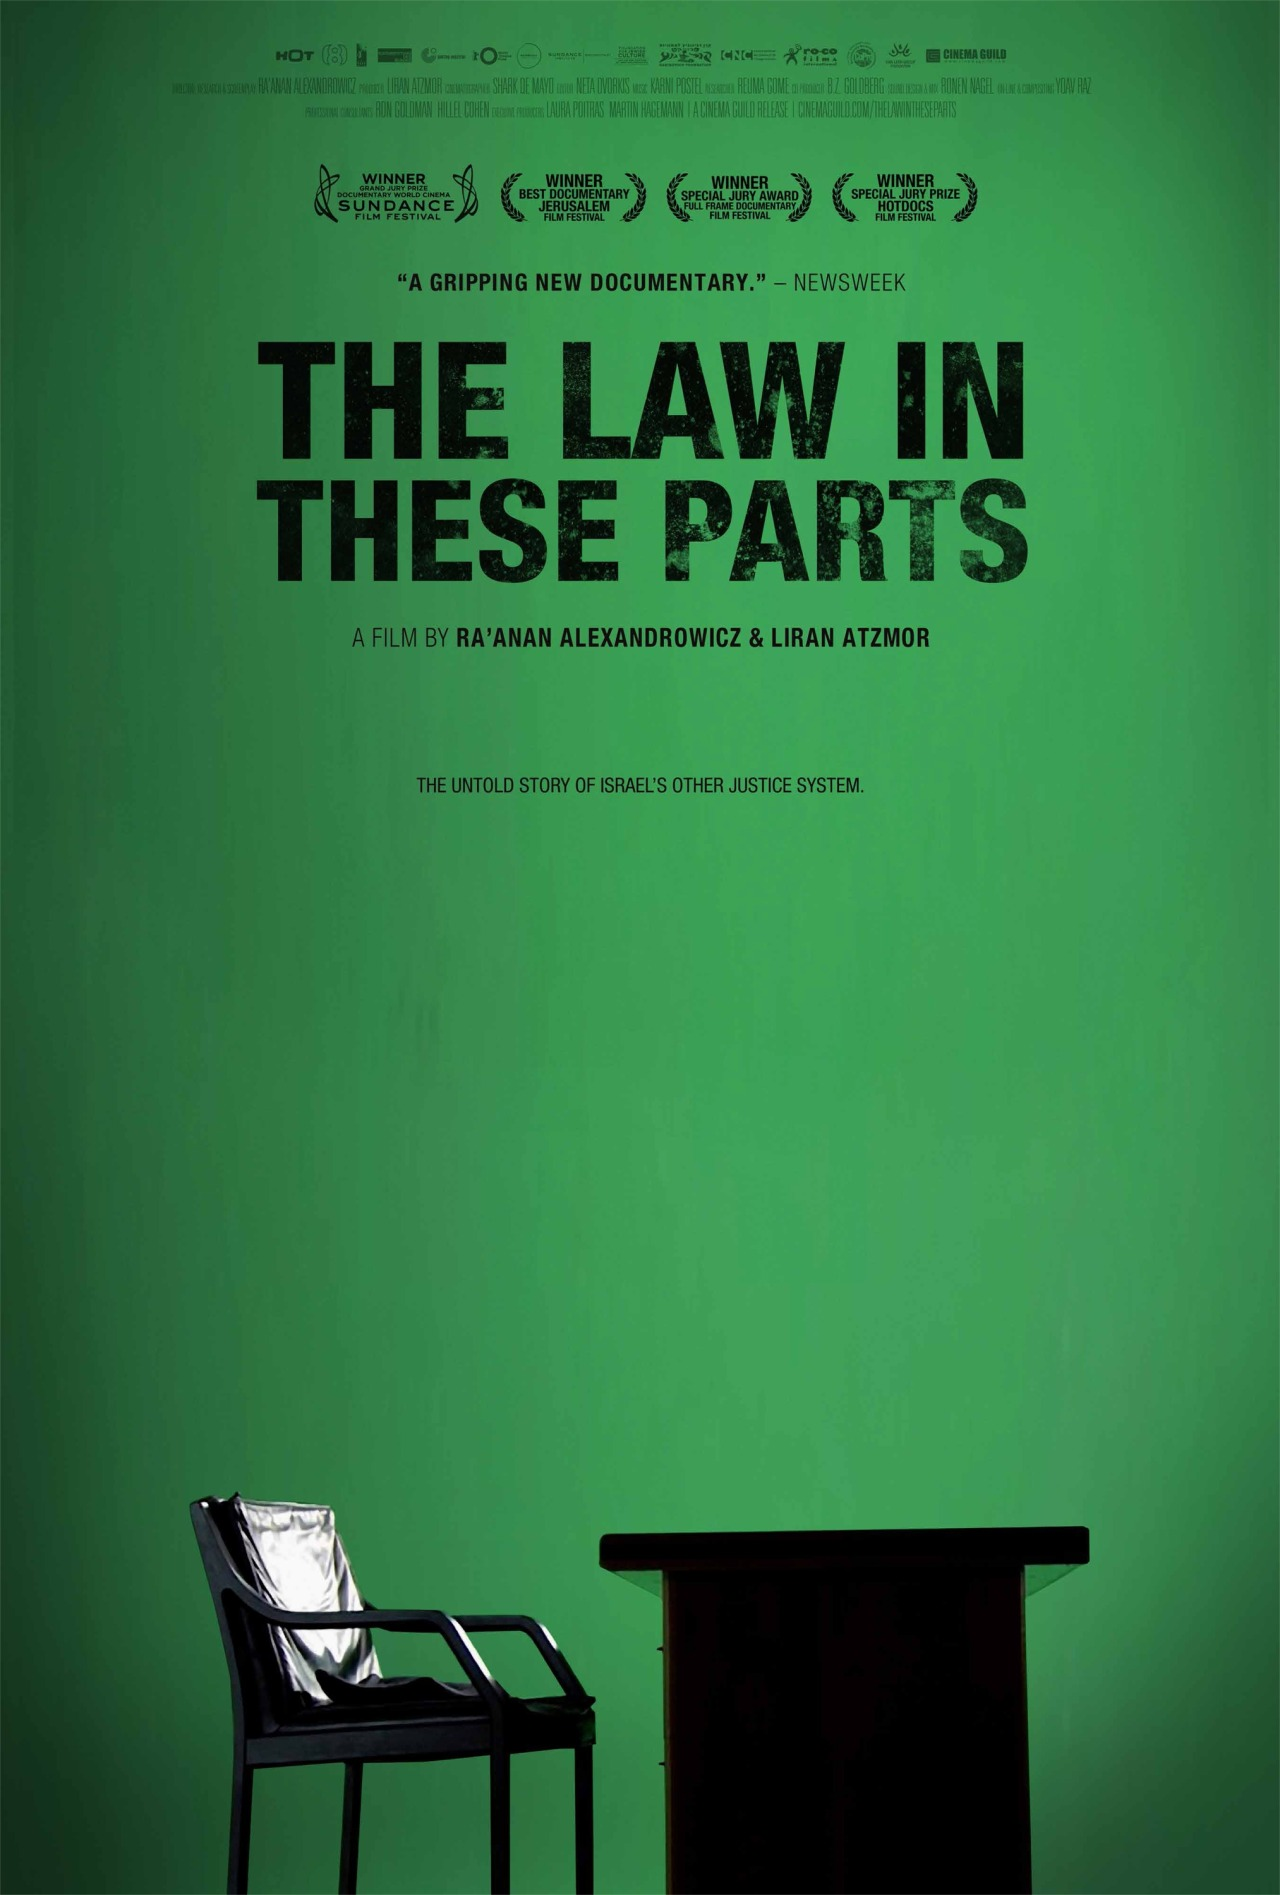 "The Law In These Parts by Ra'anan Alexandrowicz and Liran Atzmor Can a modern democracy impose a prolonged military occupation on another people while retaining its core democratic values?  Since Israel conquered the territories of the West Bank and Gaza Strip in the 1967 war, the military has imposed thousands of orders and laws, established military courts, sentenced hundreds of thousands of Palestinians, enabled half a million Israeli ""settlers"" to move to the Occupied Territories and developed a system of long-term jurisdiction by an occupying army that is unique in the entire world.    The men entrusted with creating this new legal framework were the members of Israel's military legal corps. Responding to a constantly changing reality, these legal professionals have faced (and continue to face) complex judicial and moral dilemmas in order to develop and uphold a system of long-term military ""rule by law"" of an occupied population, all under the supervision of Israel's Supreme Court, and, according to Israel, in complete accordance with international law. The Law In These Parts explores this unprecedented and little-known story through testimonies of the military legal professionals who were the architects of the system and helped run it in its formative years. The film attempts to ask some crucial questions that are often skirted or avoided: Can such an occupation be achieved within a legal framework that includes genuine adherence to the principles of rule-of-law? Should it? What are the costs that a society engaged in such a long term exercise must bear? And what are the implications of the very effort to make a documentary film about such a system?"